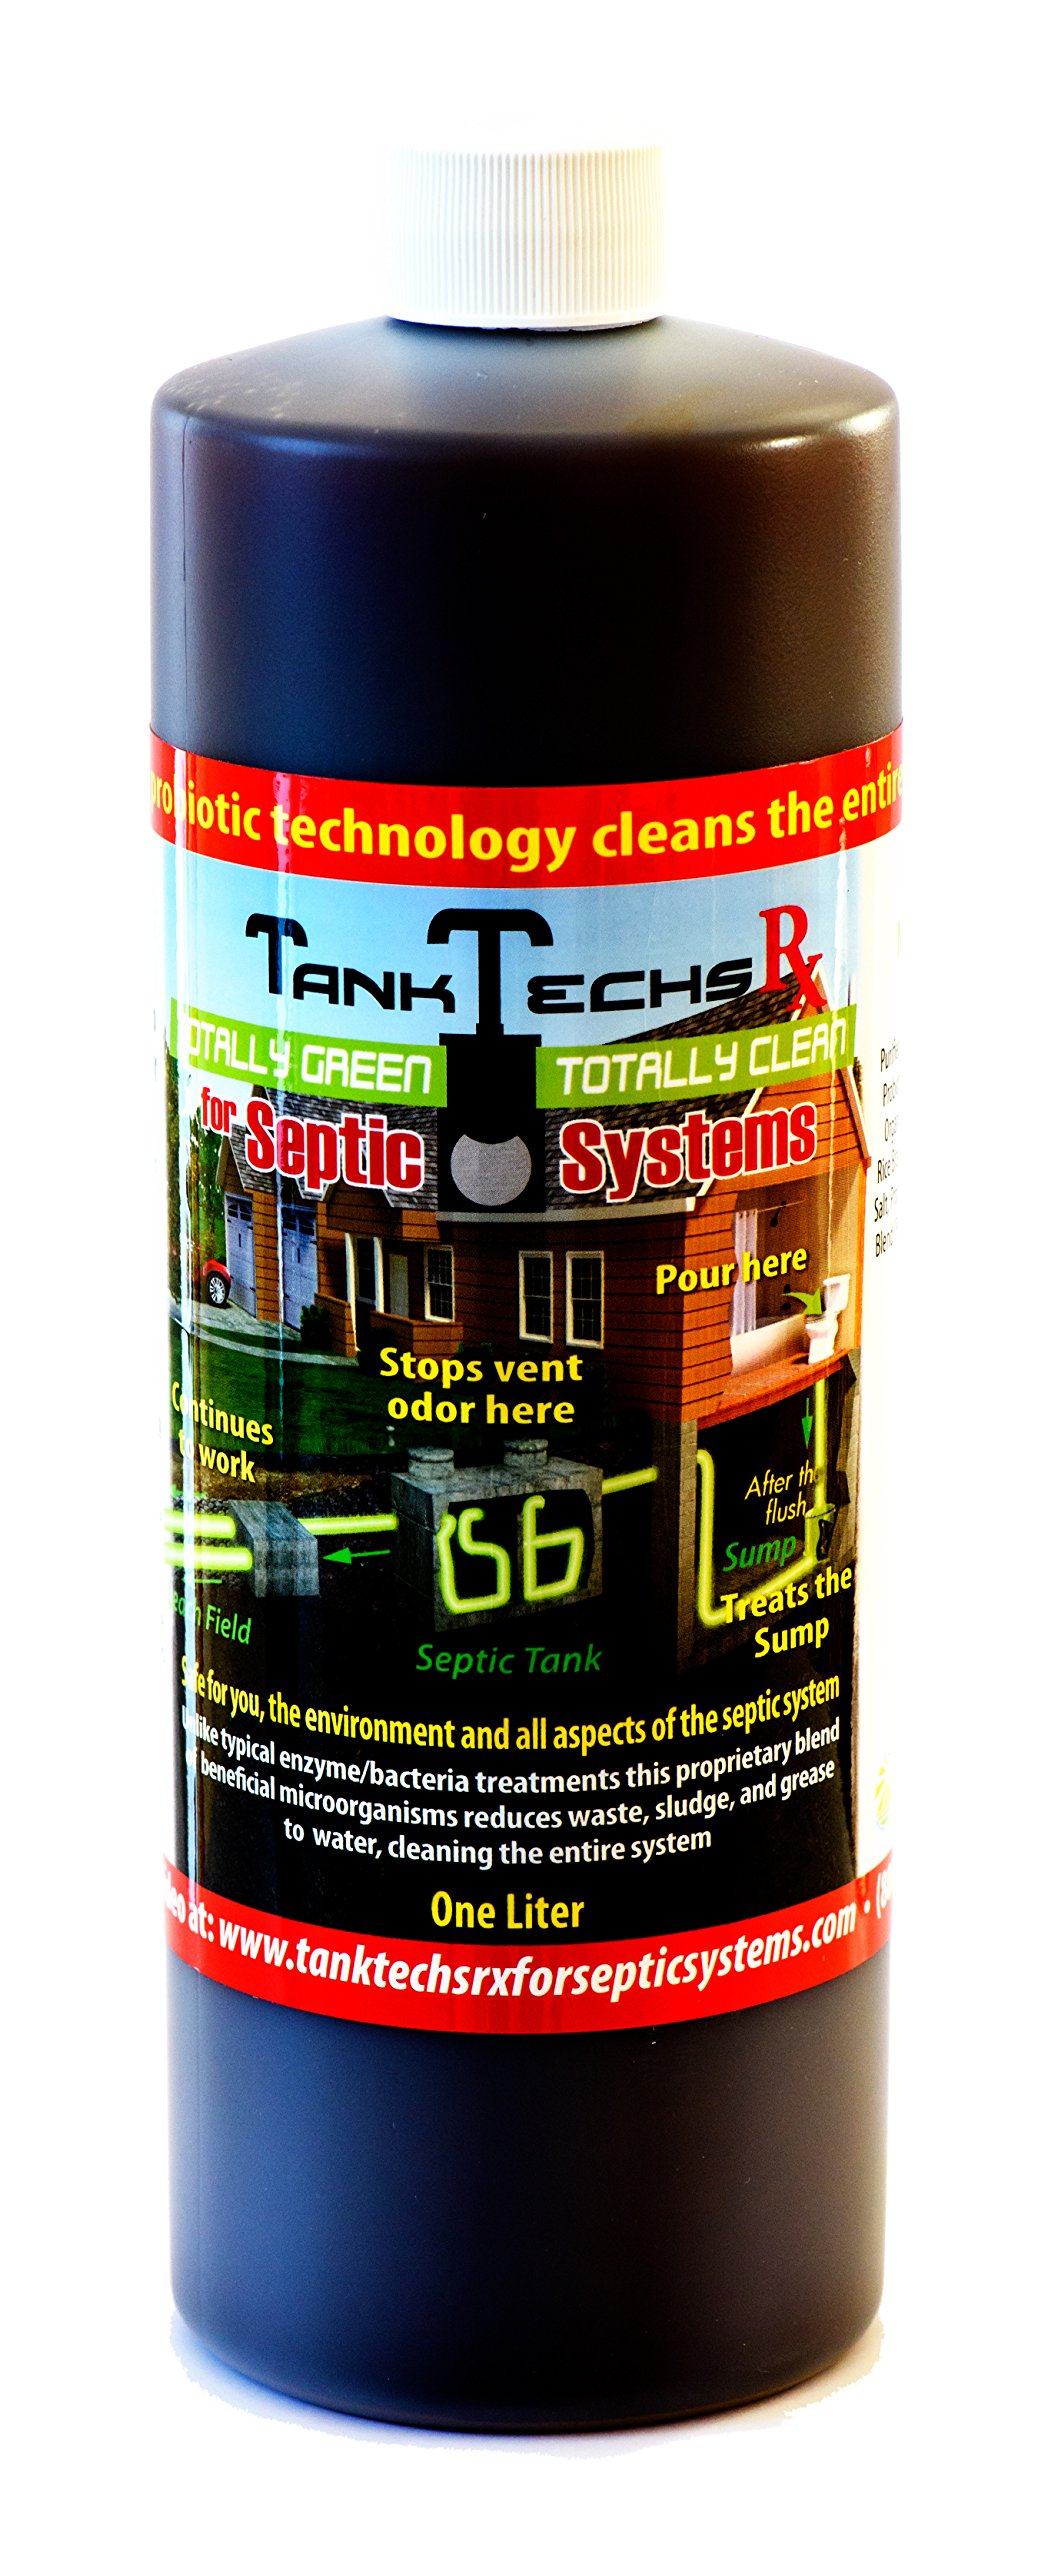 Forget About It for Septic Systems - natural probiotics by TankTechs Rx 25775